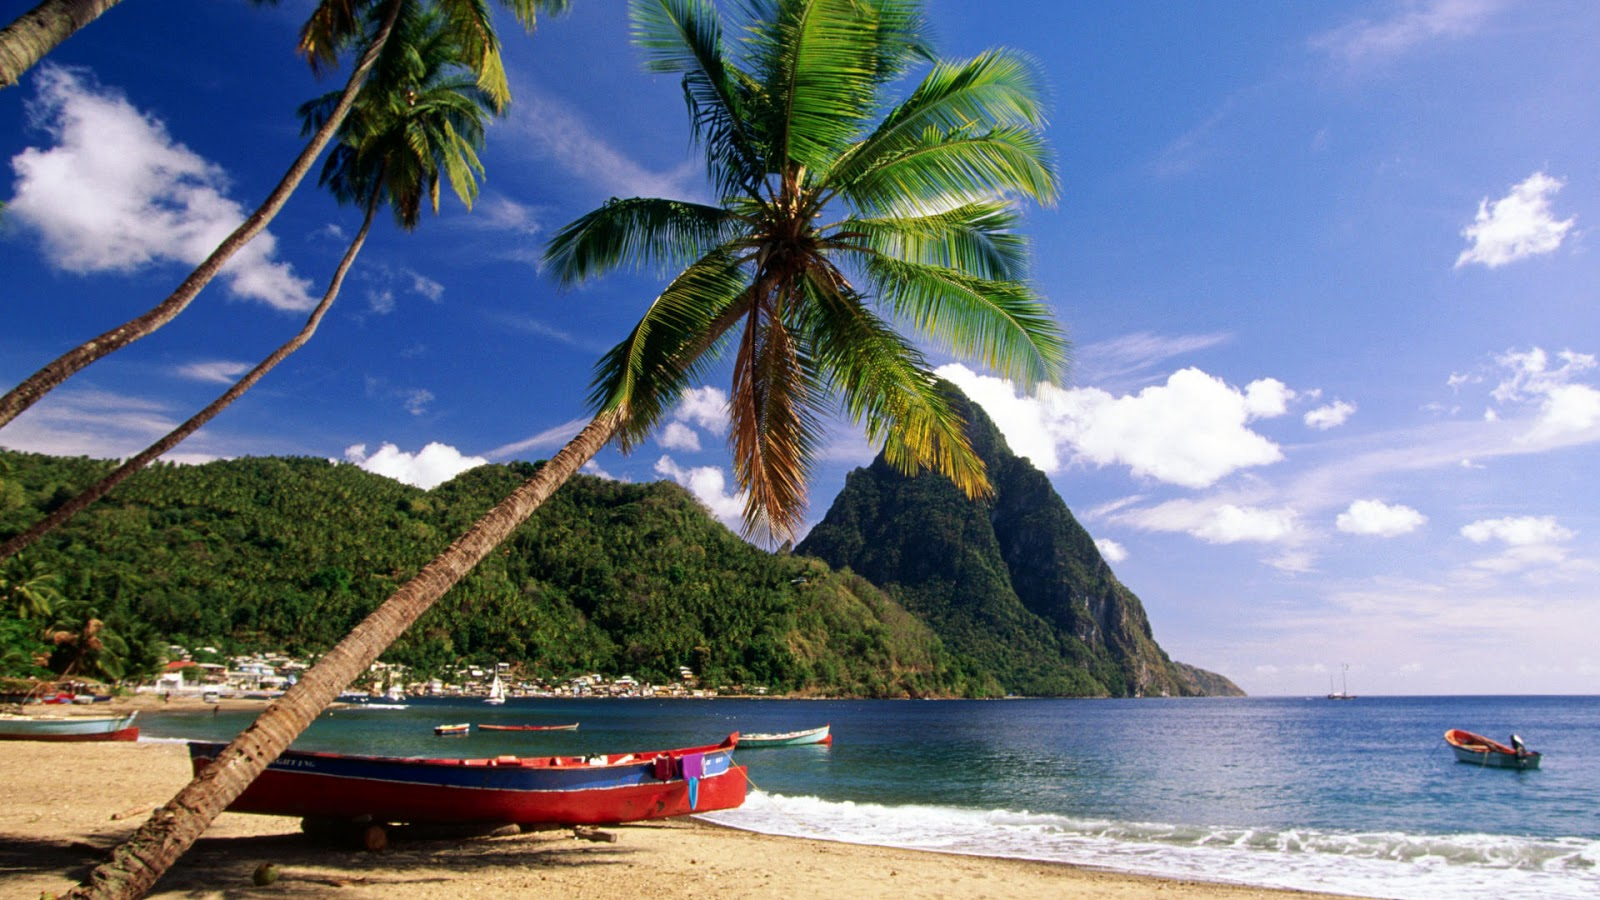 45 Caribbean Island Beach HD Wallpaper 1600x900